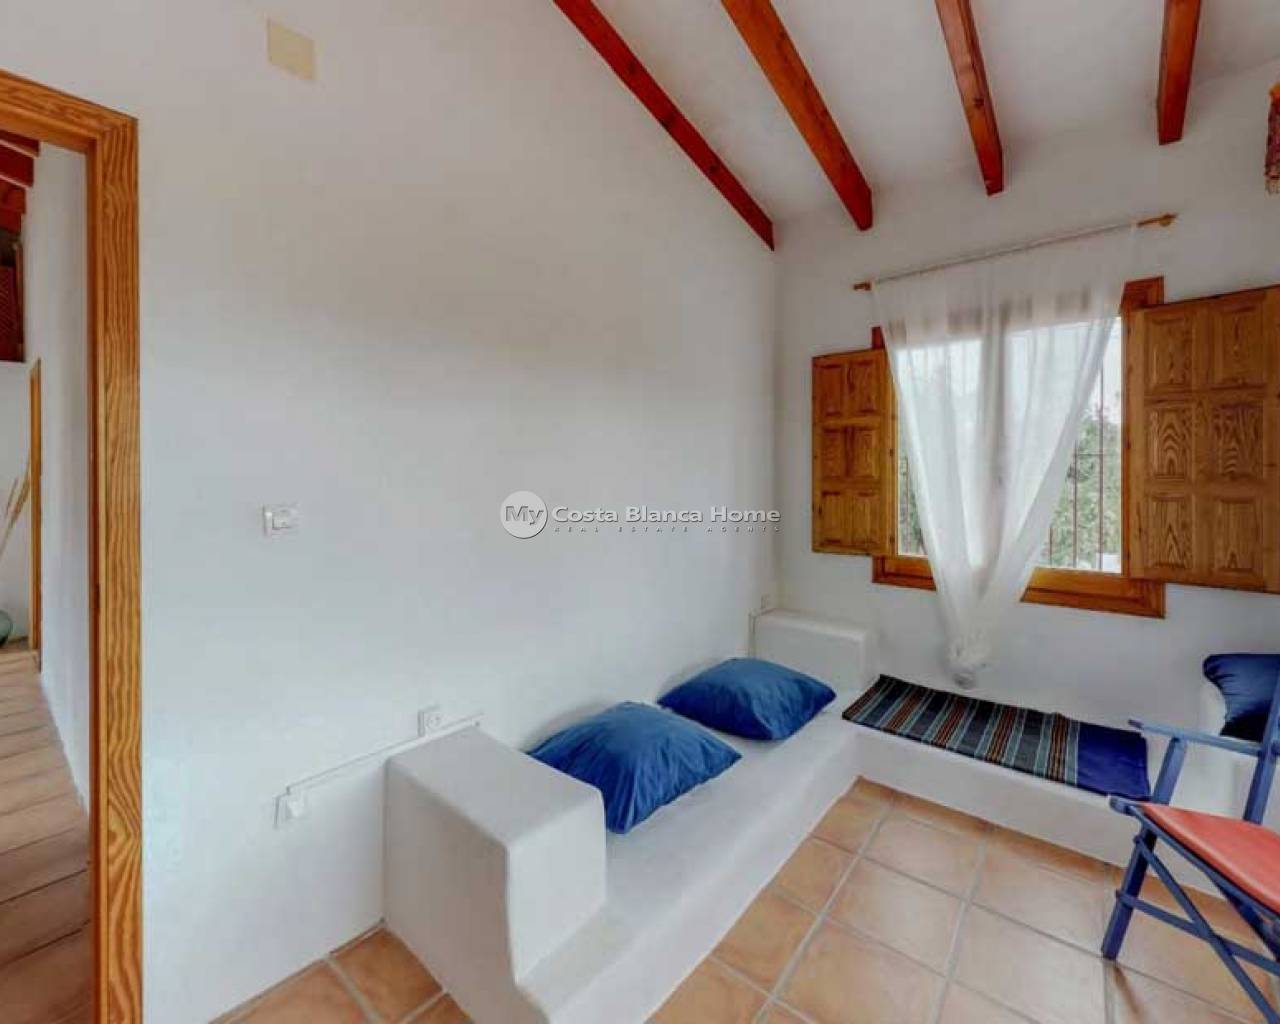 Resale - Country Property/Finca - Muchamiel - Muchamiel Alicante